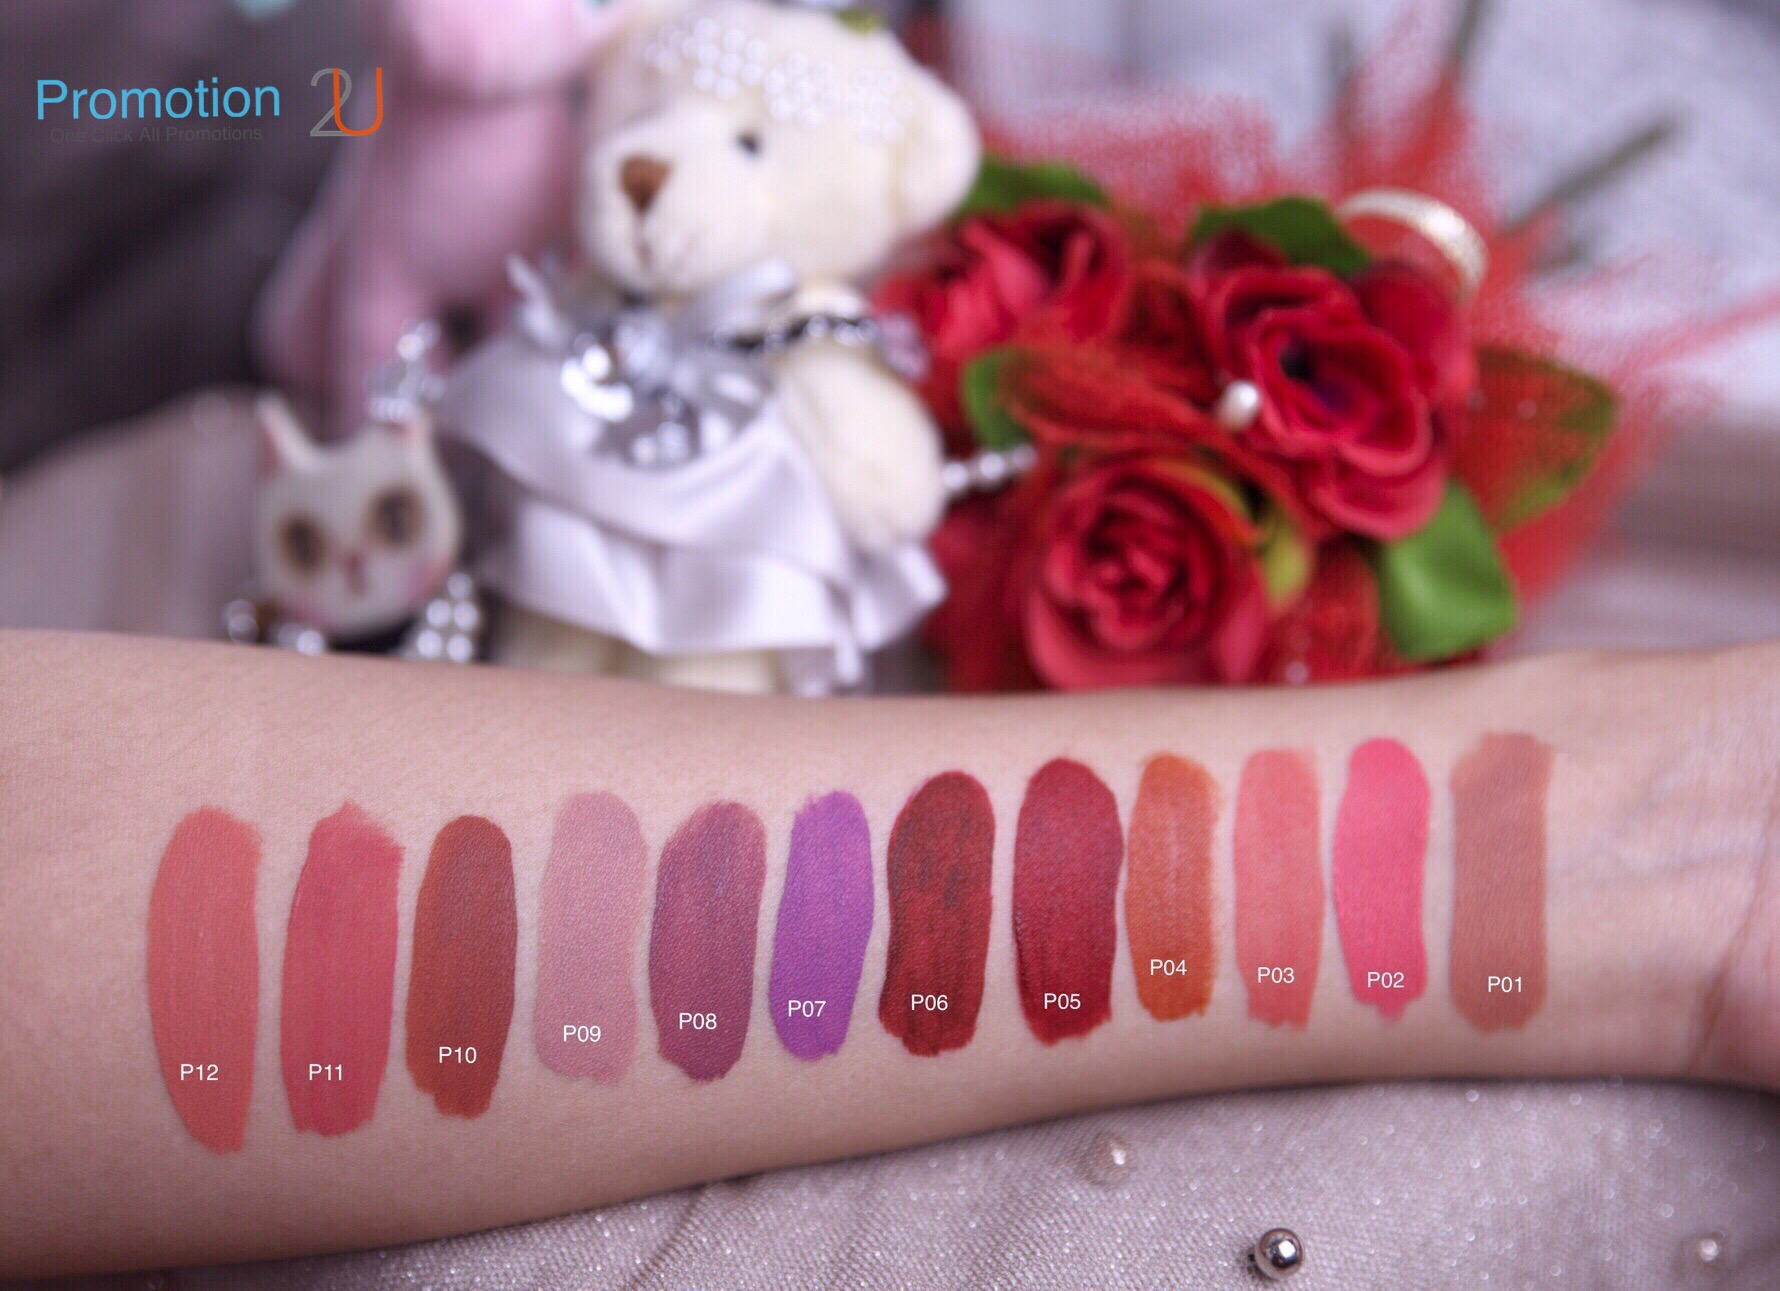 2U Beauty Gratia Perfect Liquid Matte Lips Review